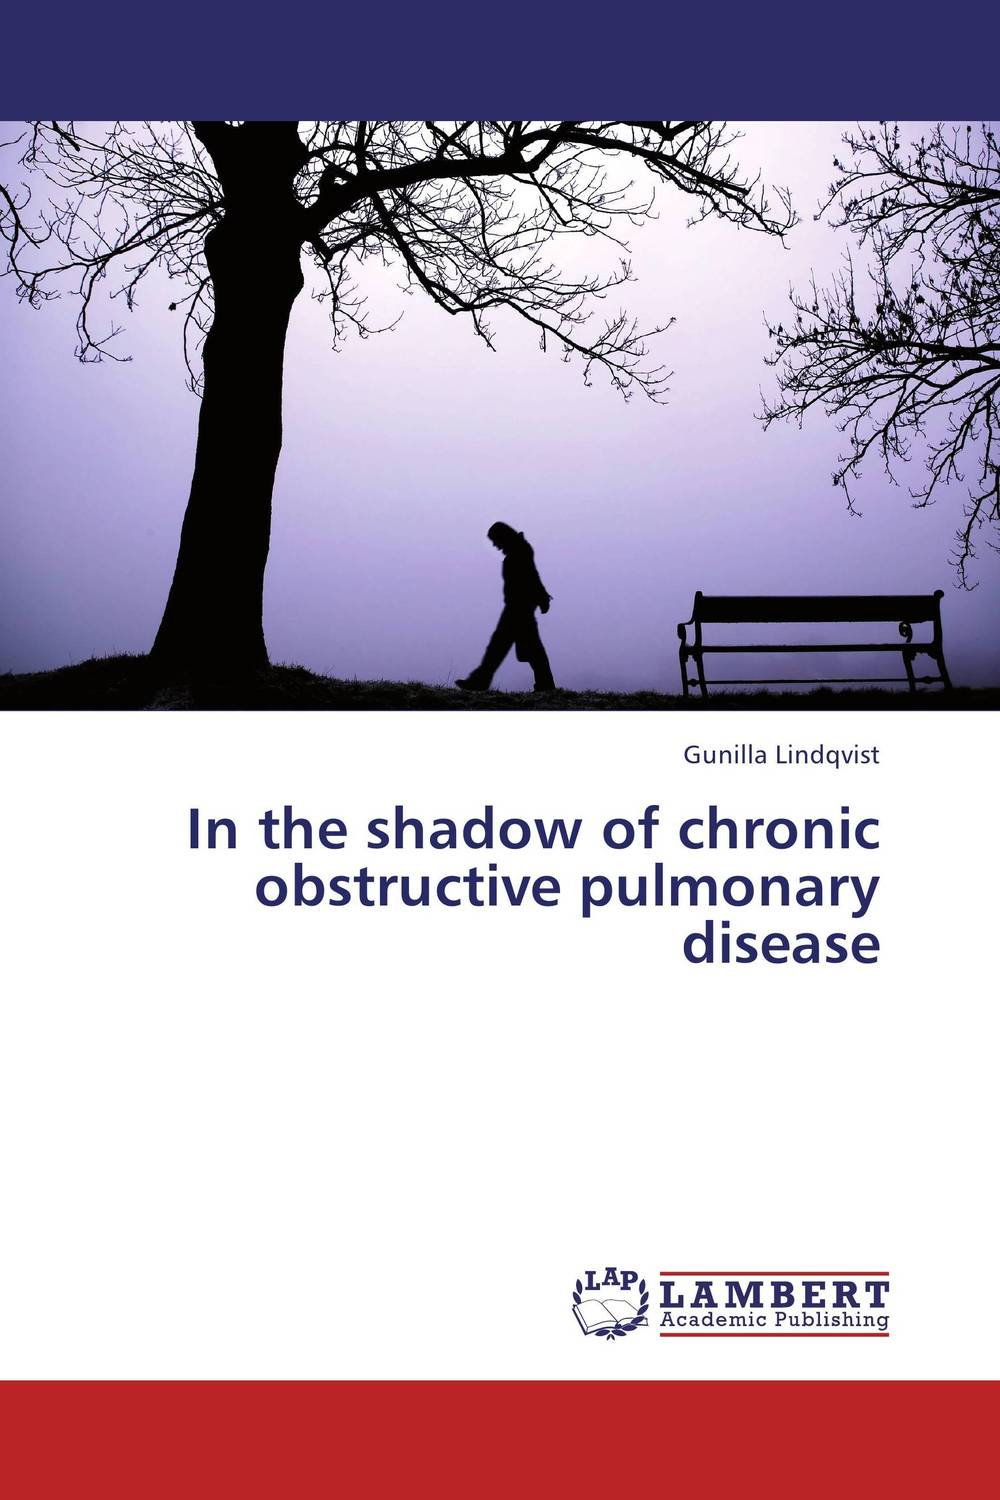 In the shadow of chronic obstructive pulmonary disease family caregiving in the new normal